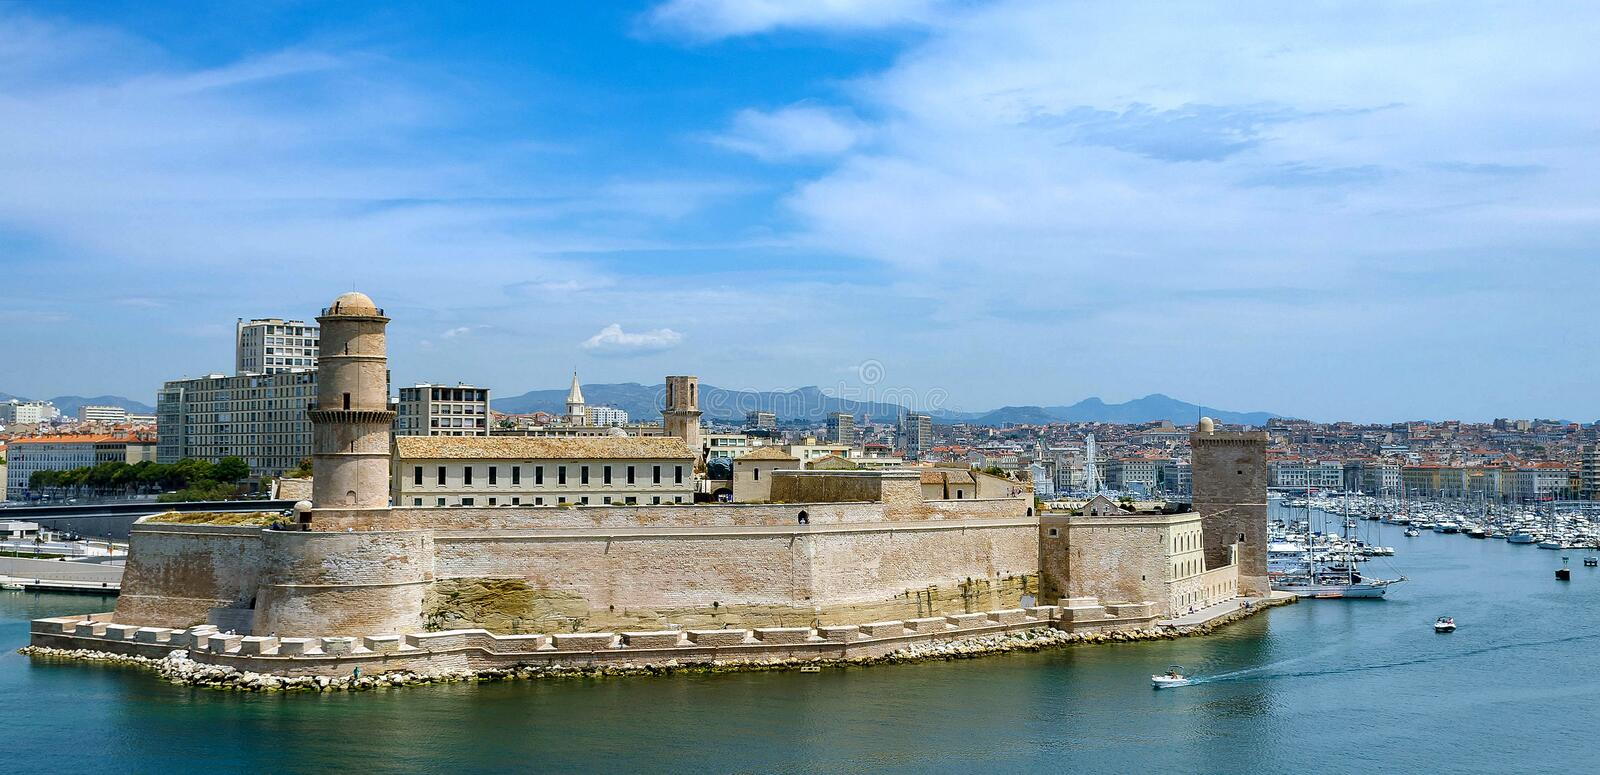 Fort Saint-Jean. The fort of St. Nicholas is one of two fortresses that were built in the 17th century at the entrance to the Old Port of Marseilles by the royalty free stock photo